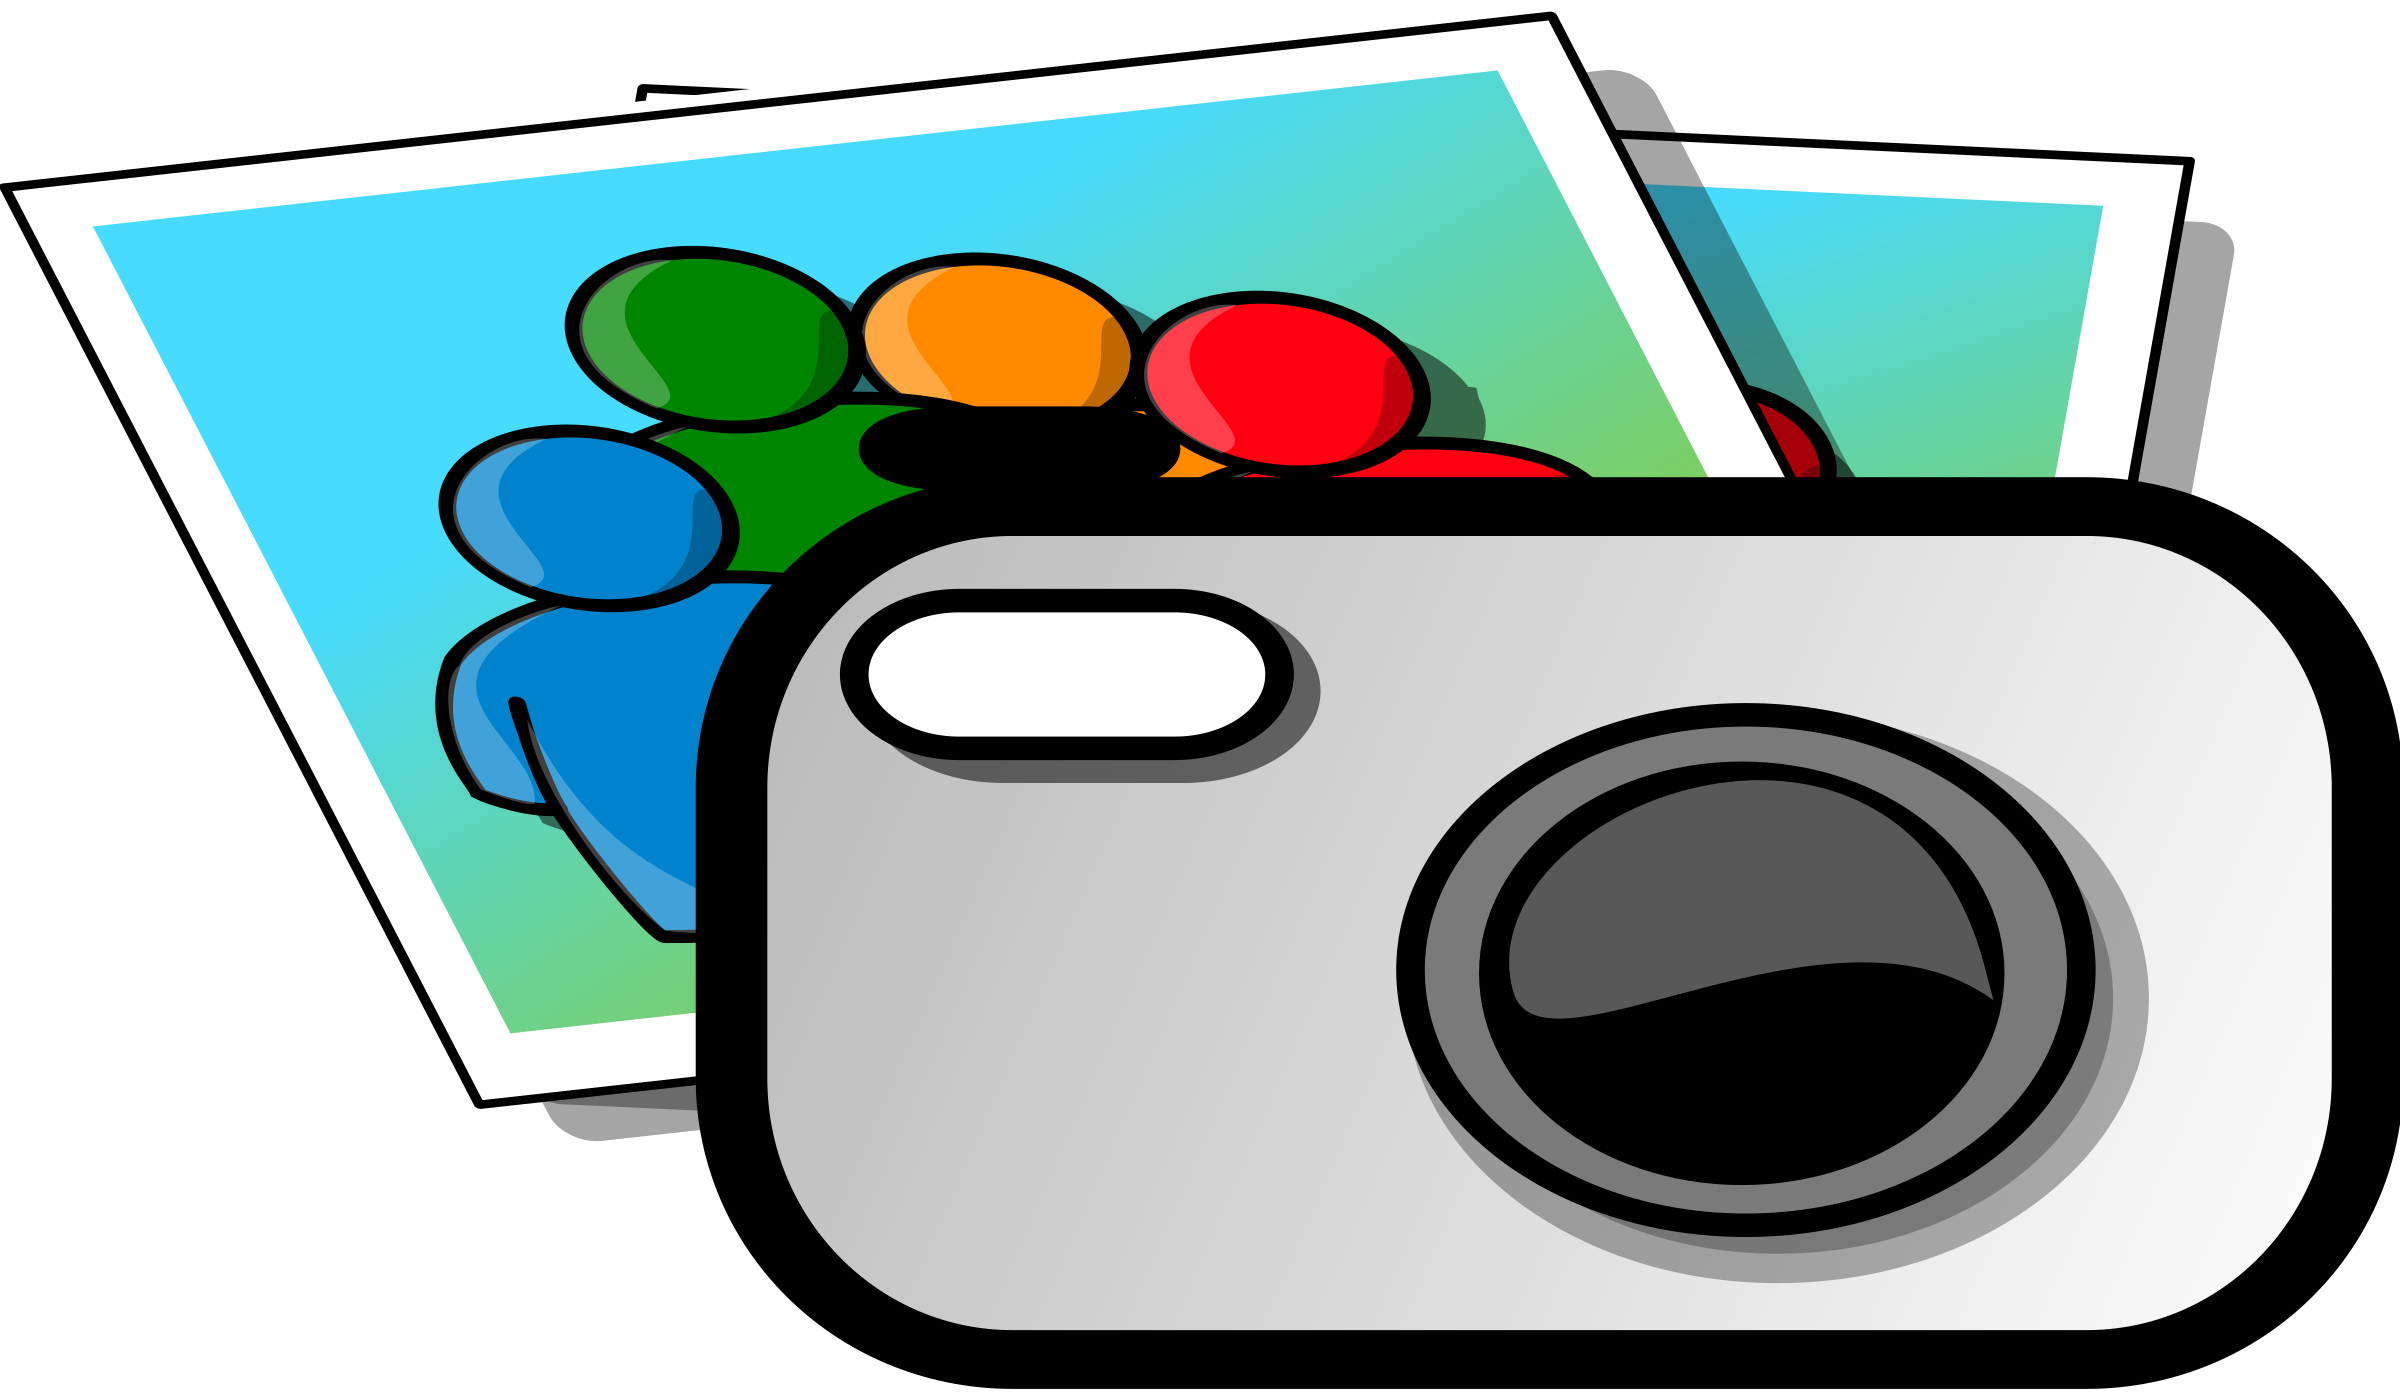 Photo icon -  by Anonymous - https://openclipart.org/detail/13098/photo-camera